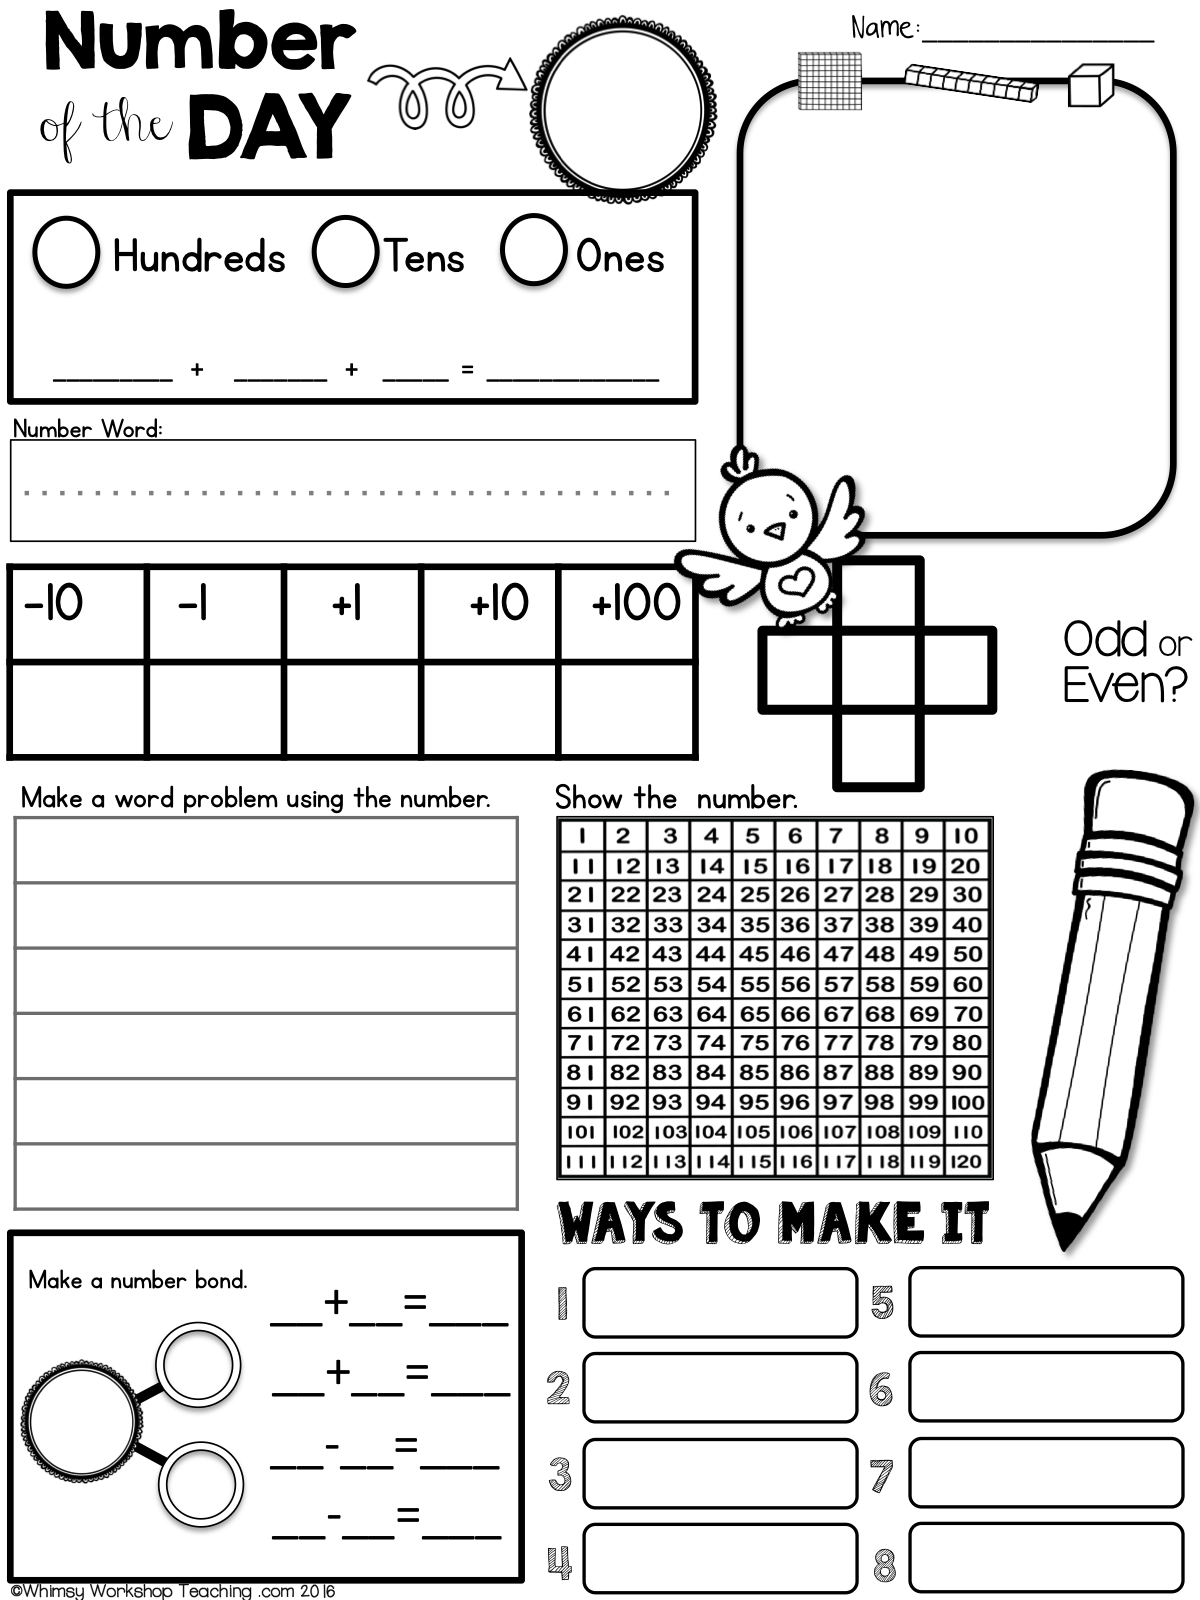 Math: 5 Steps to a Successful Program | Pinterest | Template, Number ...